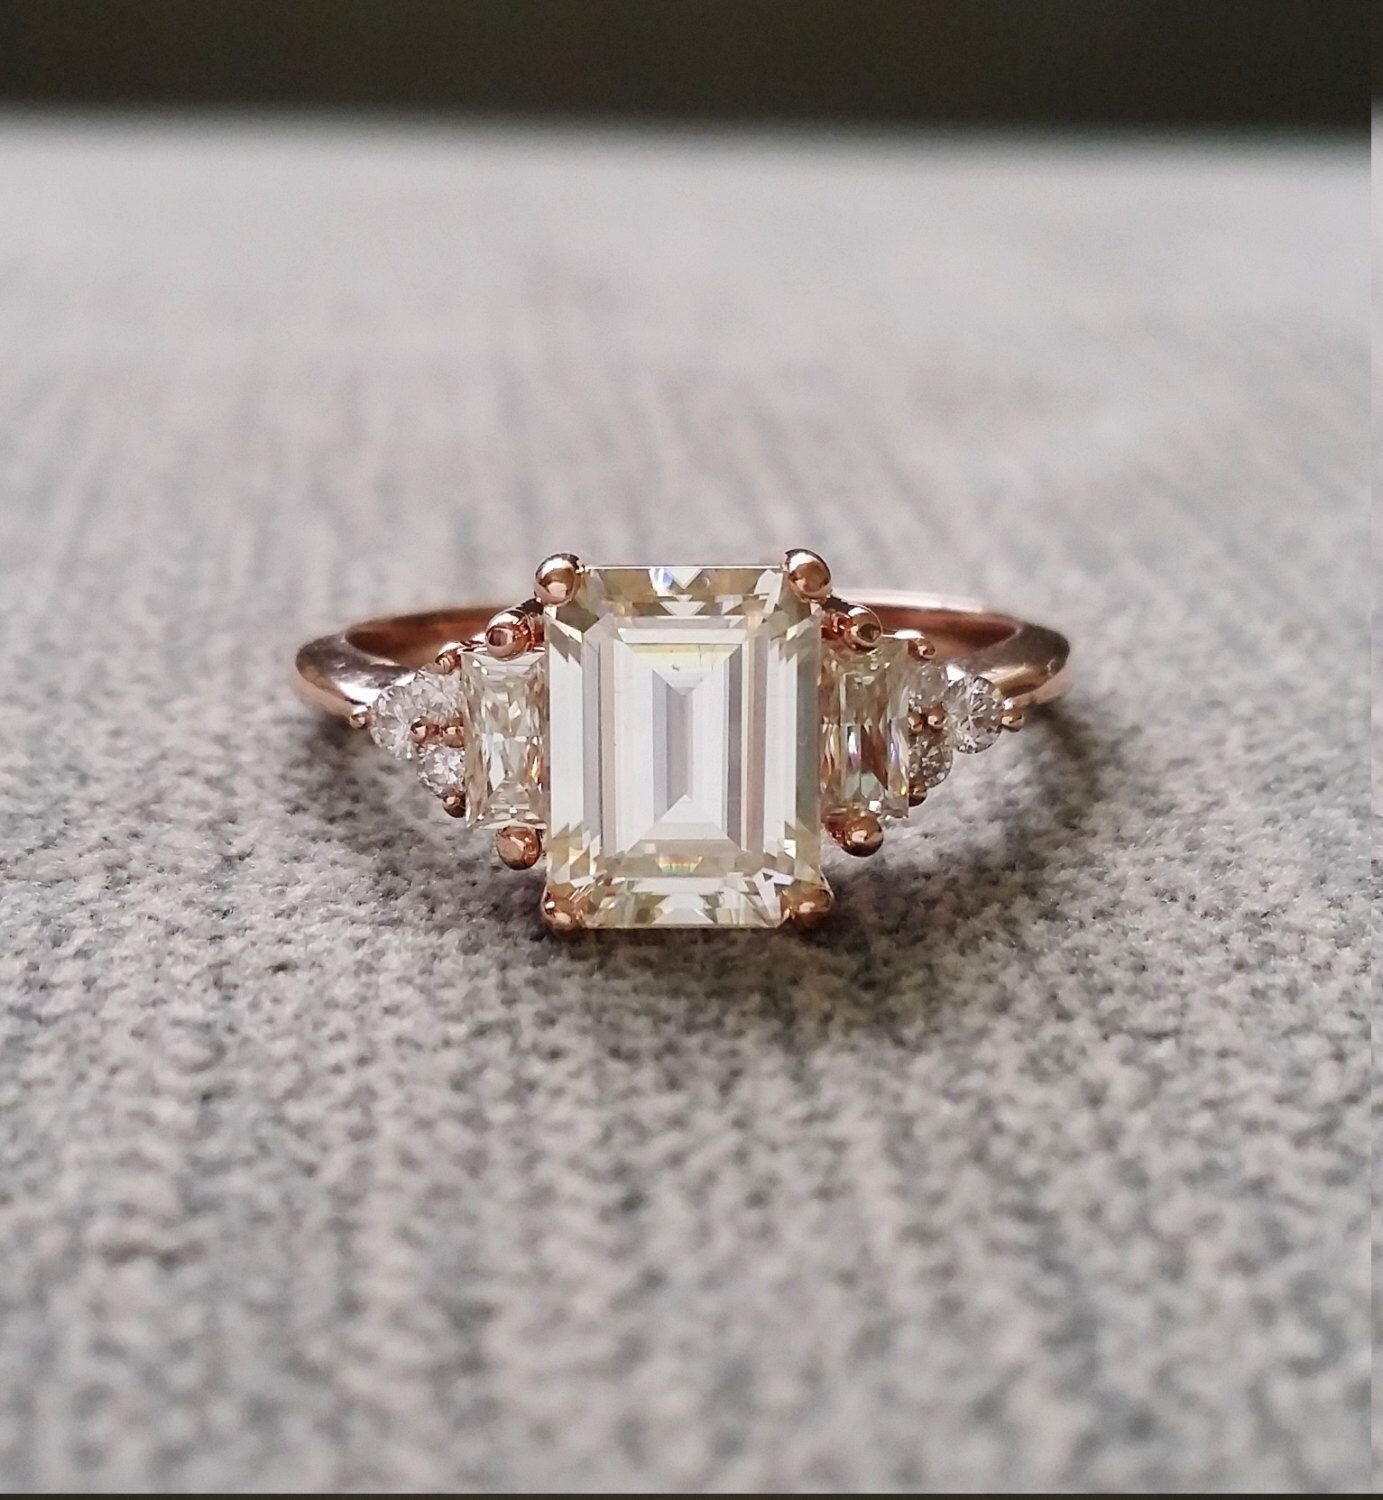 Antique Moissanite And Diamond Engagement Ring Emerald Cut Baguette Flower  Classic Rose Gold Timeless Penellibelle Exclusive